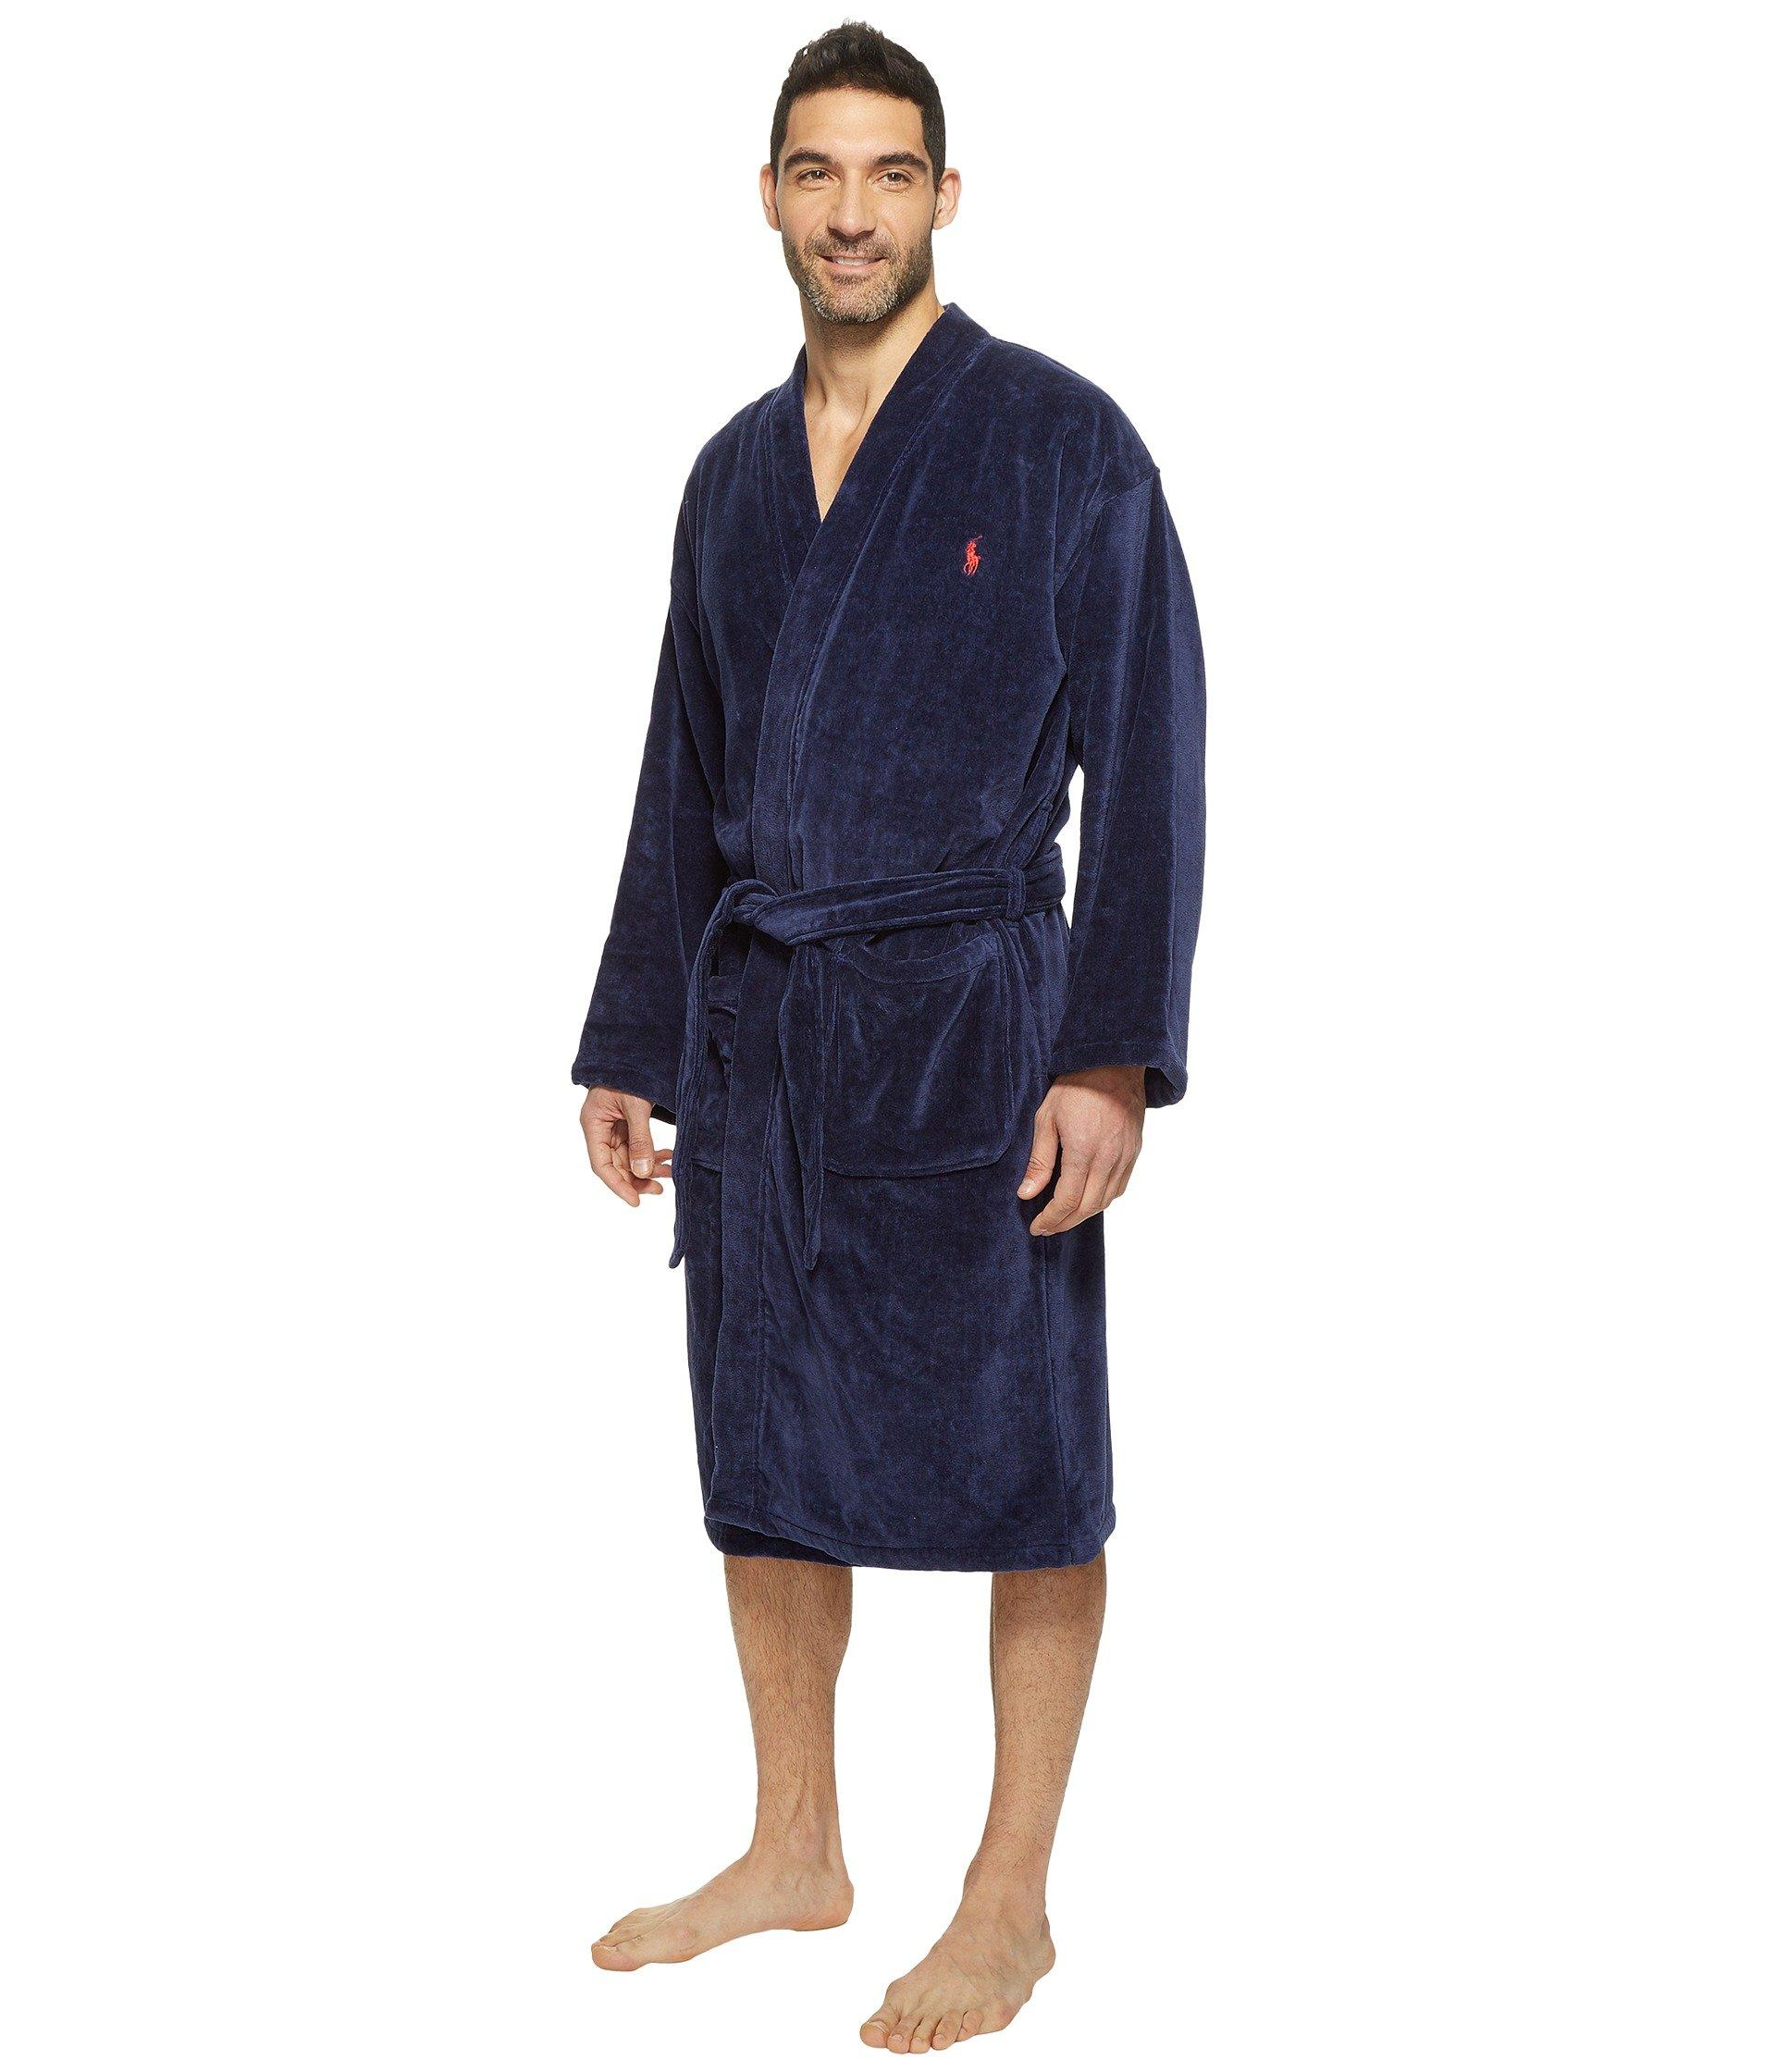 Lyst - Polo Ralph Lauren Terry Shawl Robe (white) Men s Robe in Blue for Men e0ab8ef39